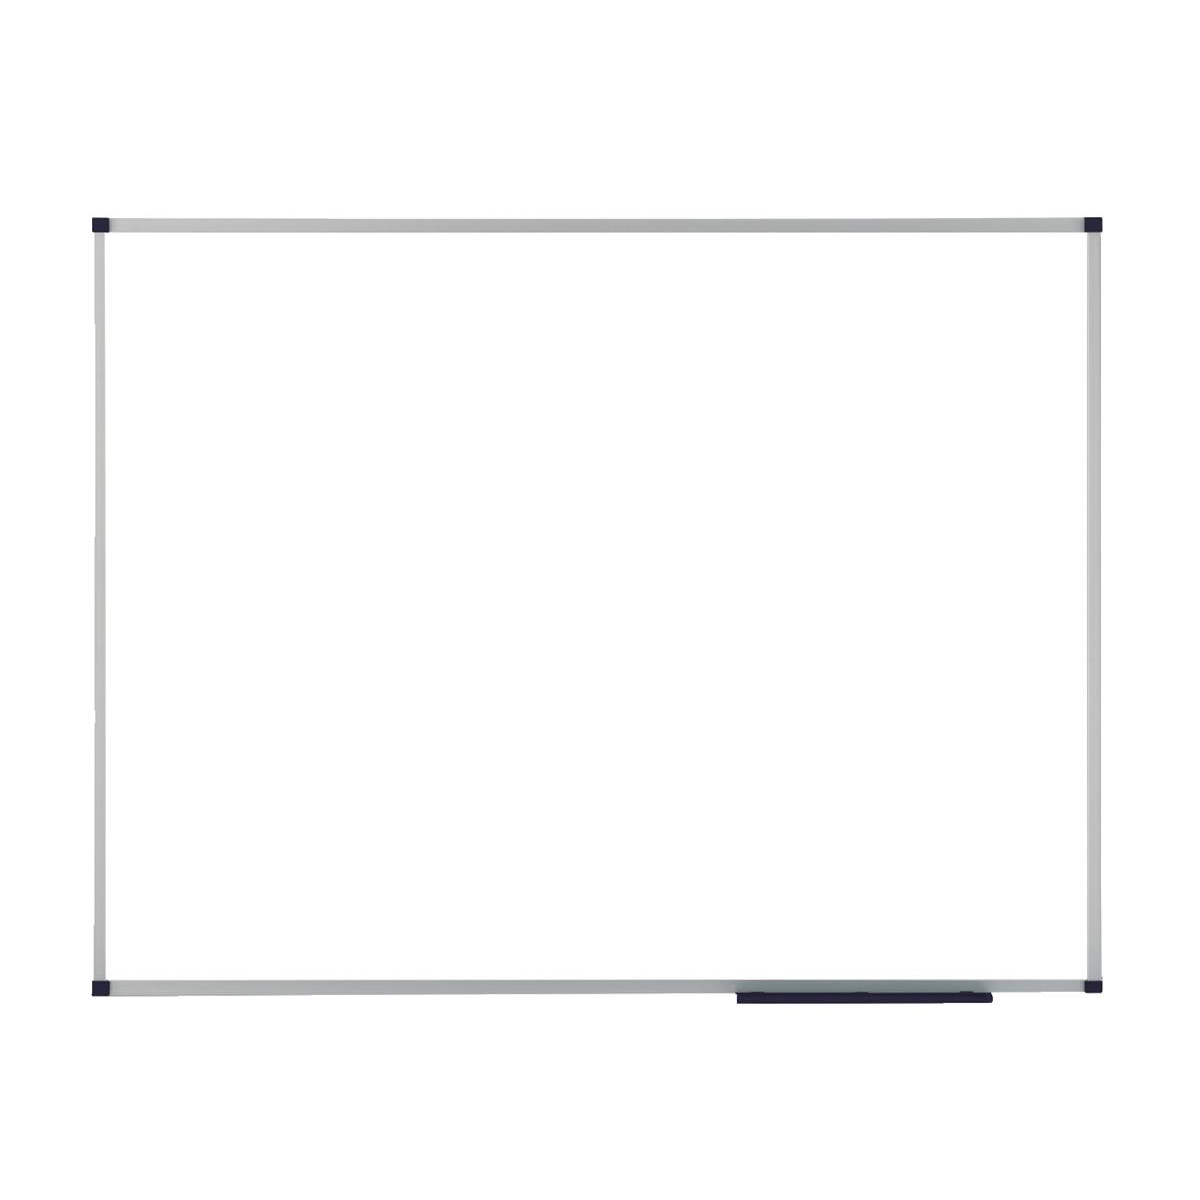 Nobo Prestige Enamel Eco Whiteboard Magnetic Fixings Included W900xH600mm White Ref 1905235